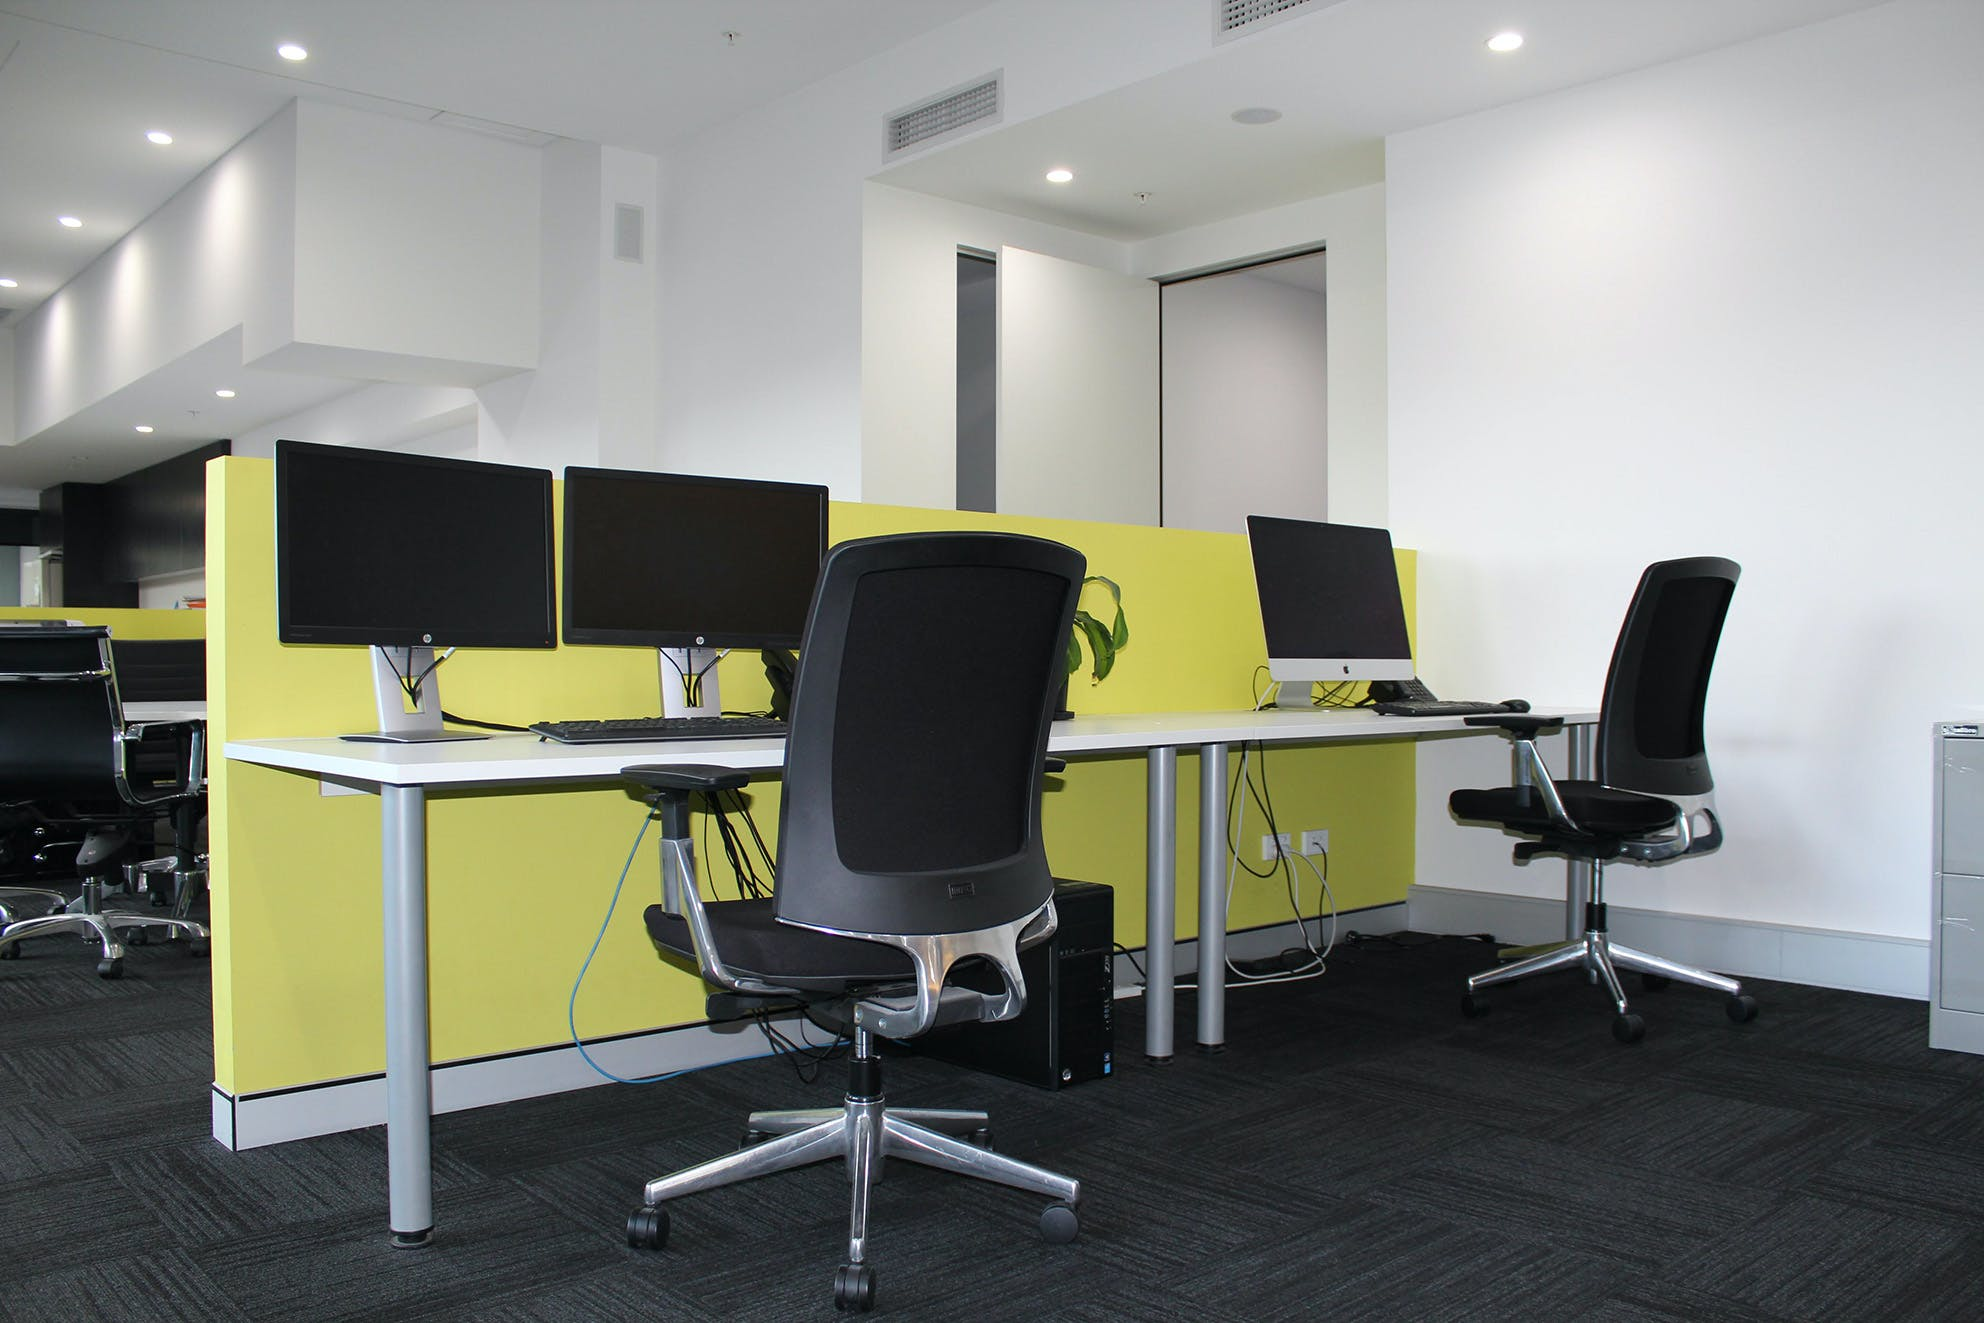 Dedicated desk at Redfern office space, image 4